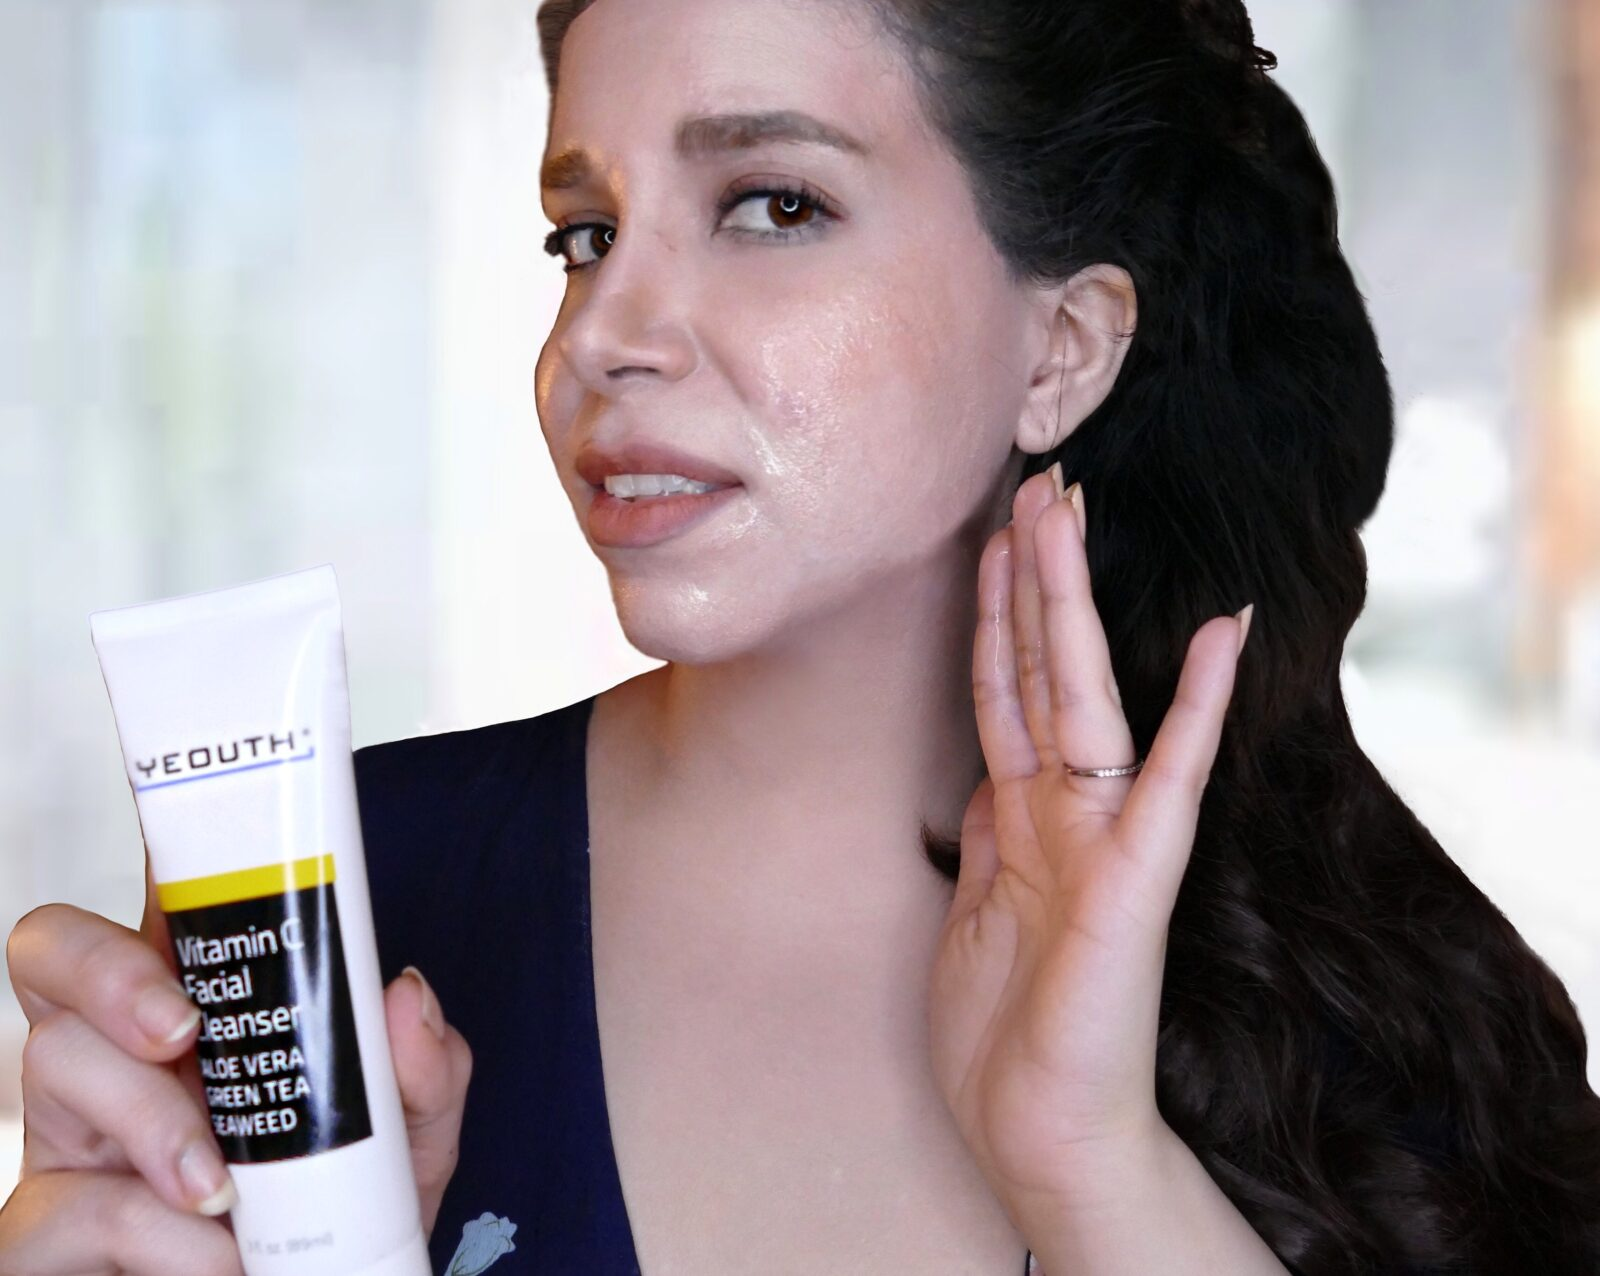 Best-Yeouth-Vitamin-C-Cleanser-review-anti-aging-detox